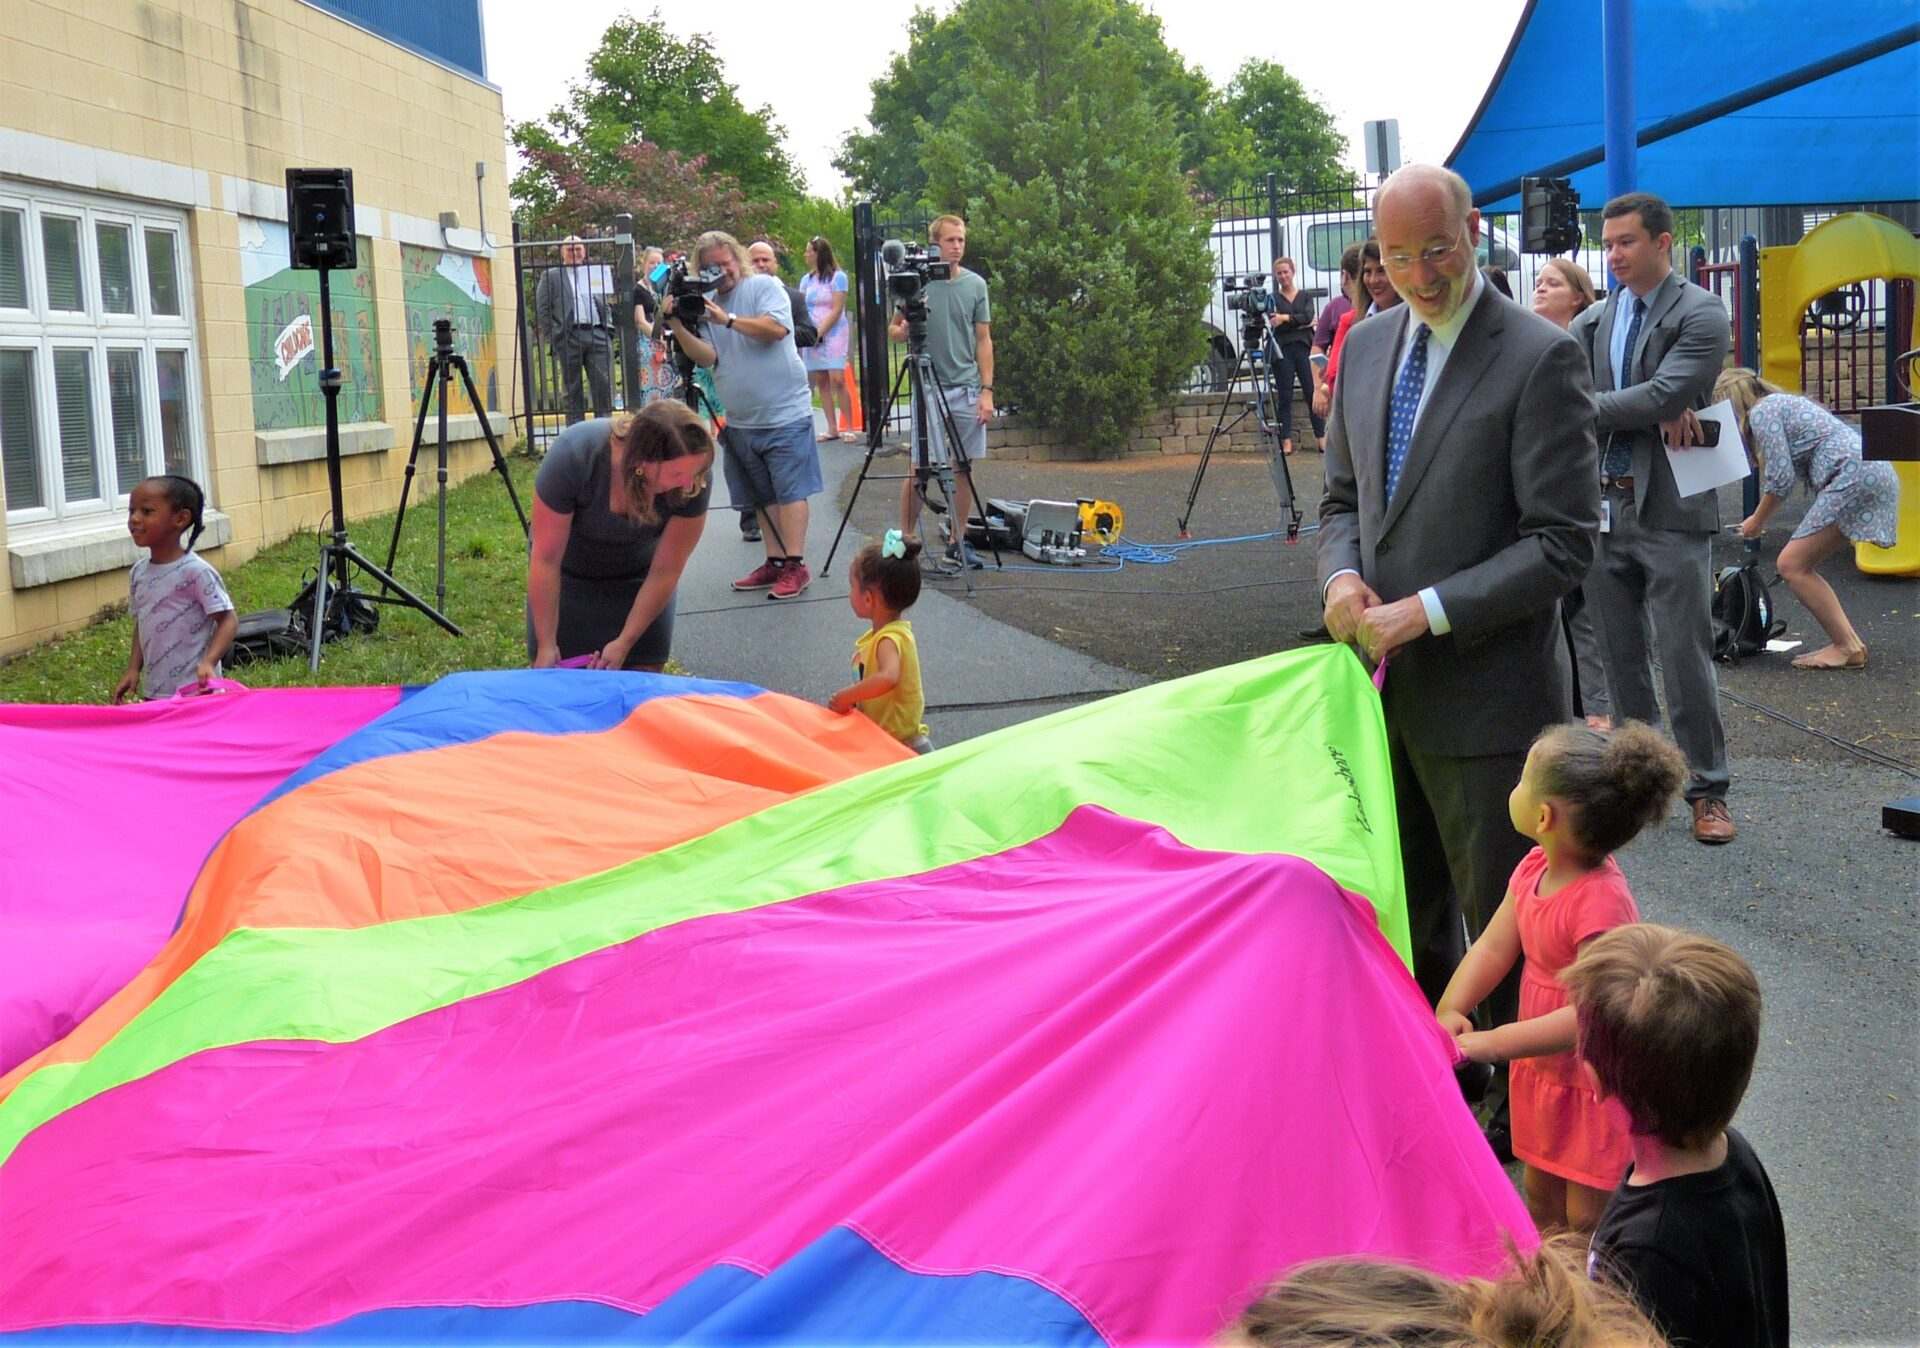 Gov. Tom Wolf takes part in a game with a parachute in the playground at Community Action Partnership of Lancaster County on Thursday, July 8, 2021. Acting Health Secretary Meg Snead is second from left. (Photo: Tim Stuhldreher)